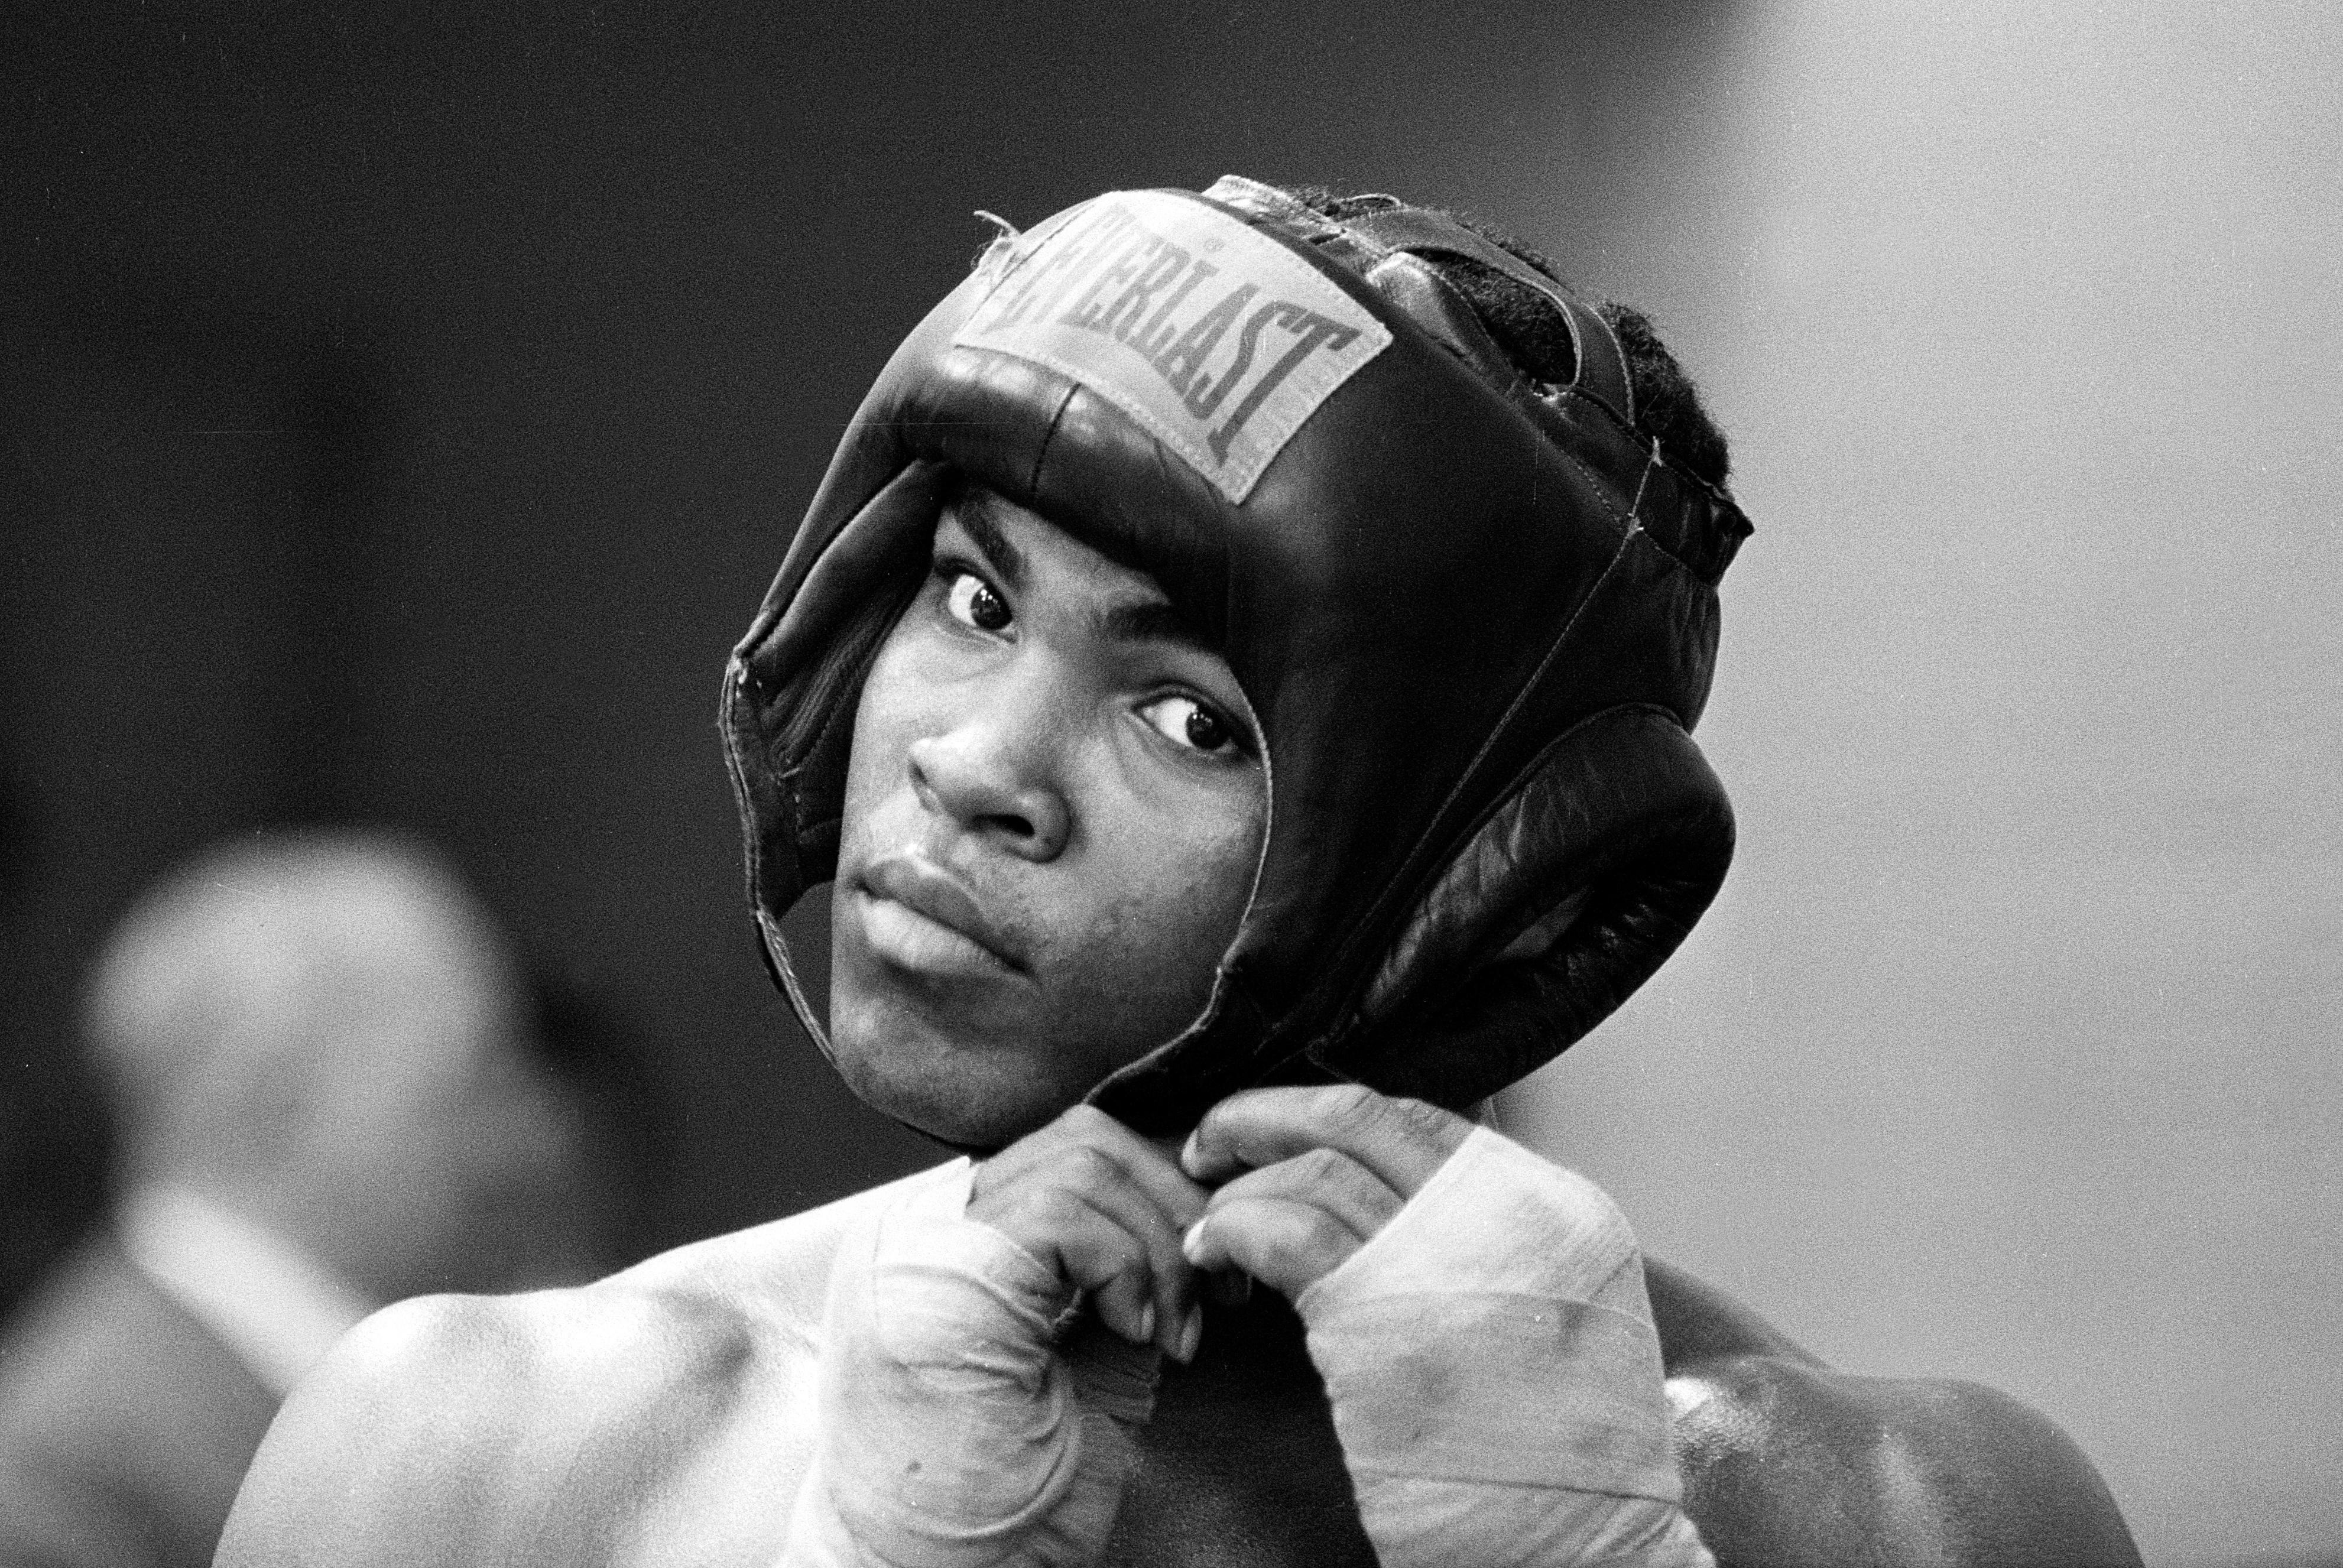 Observer archive: Cassius Clay in London, 30 May 1963